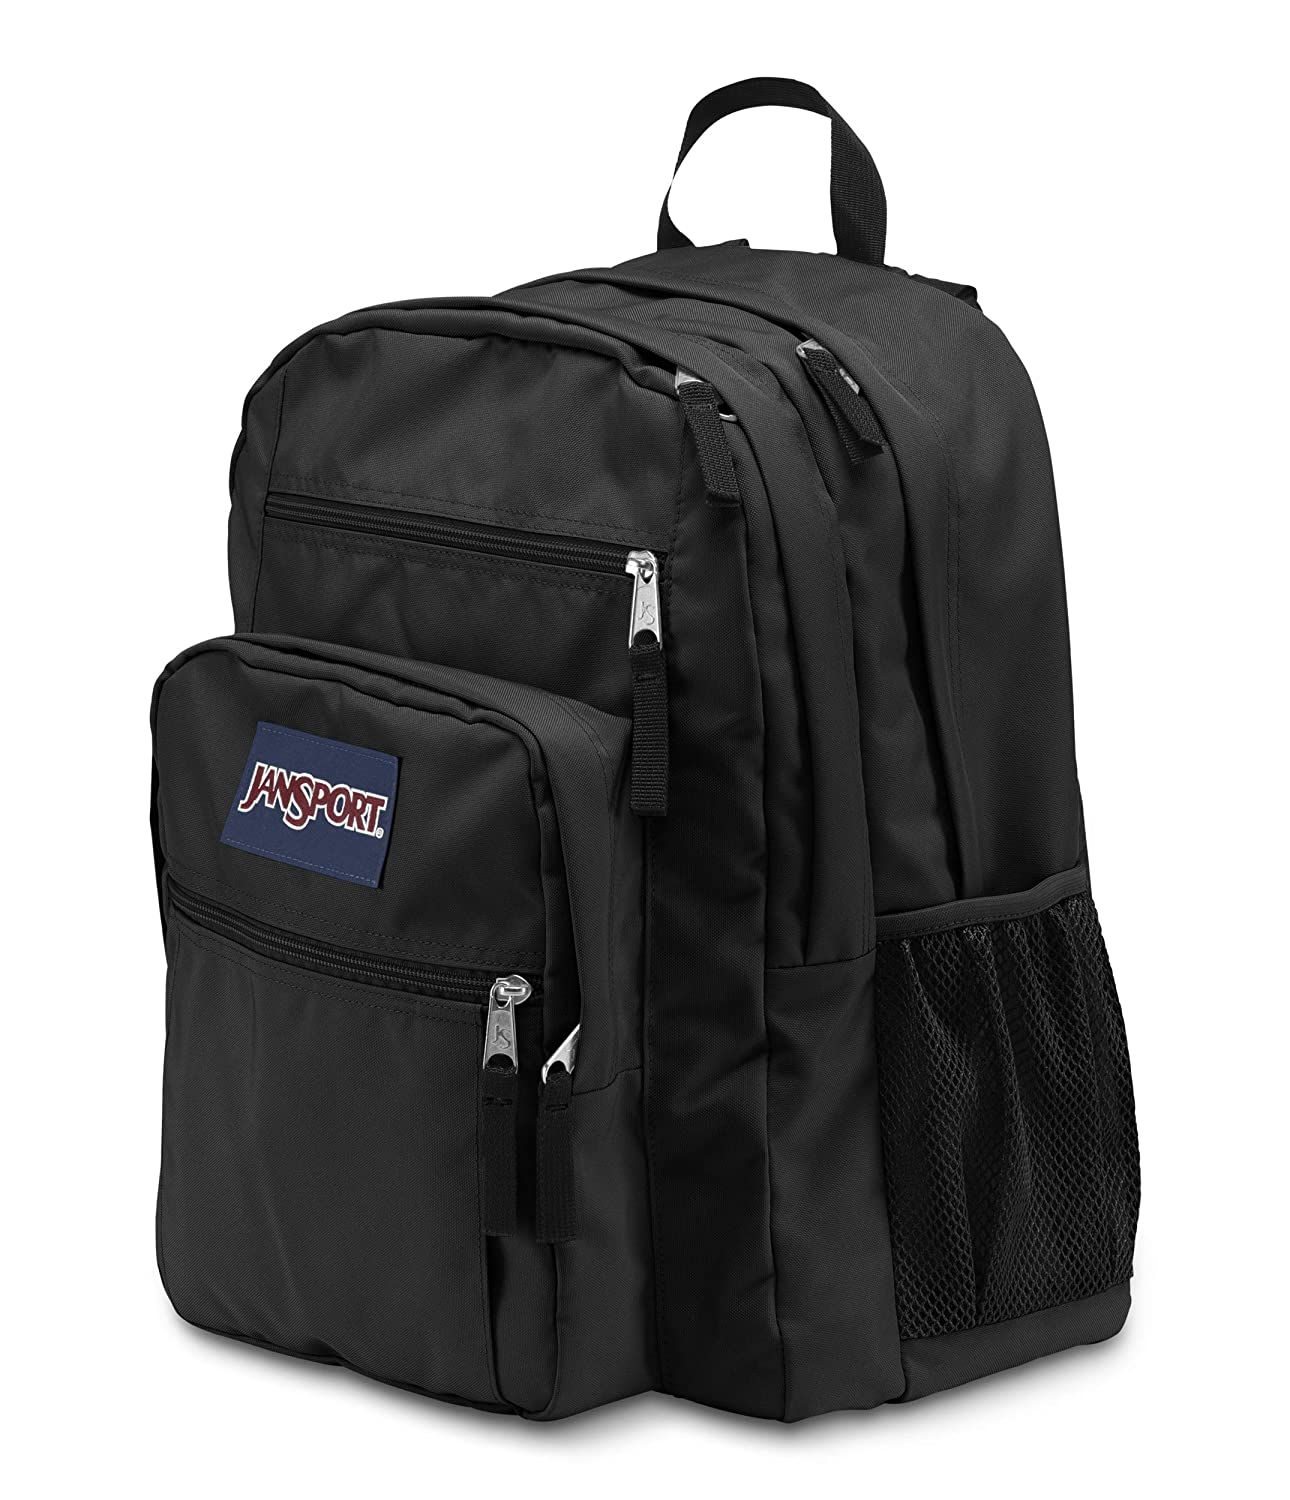 fb840280ecd6 Amazon.com  JanSport Big Student Backpack - Black - Oversized  JanSport   Clothing